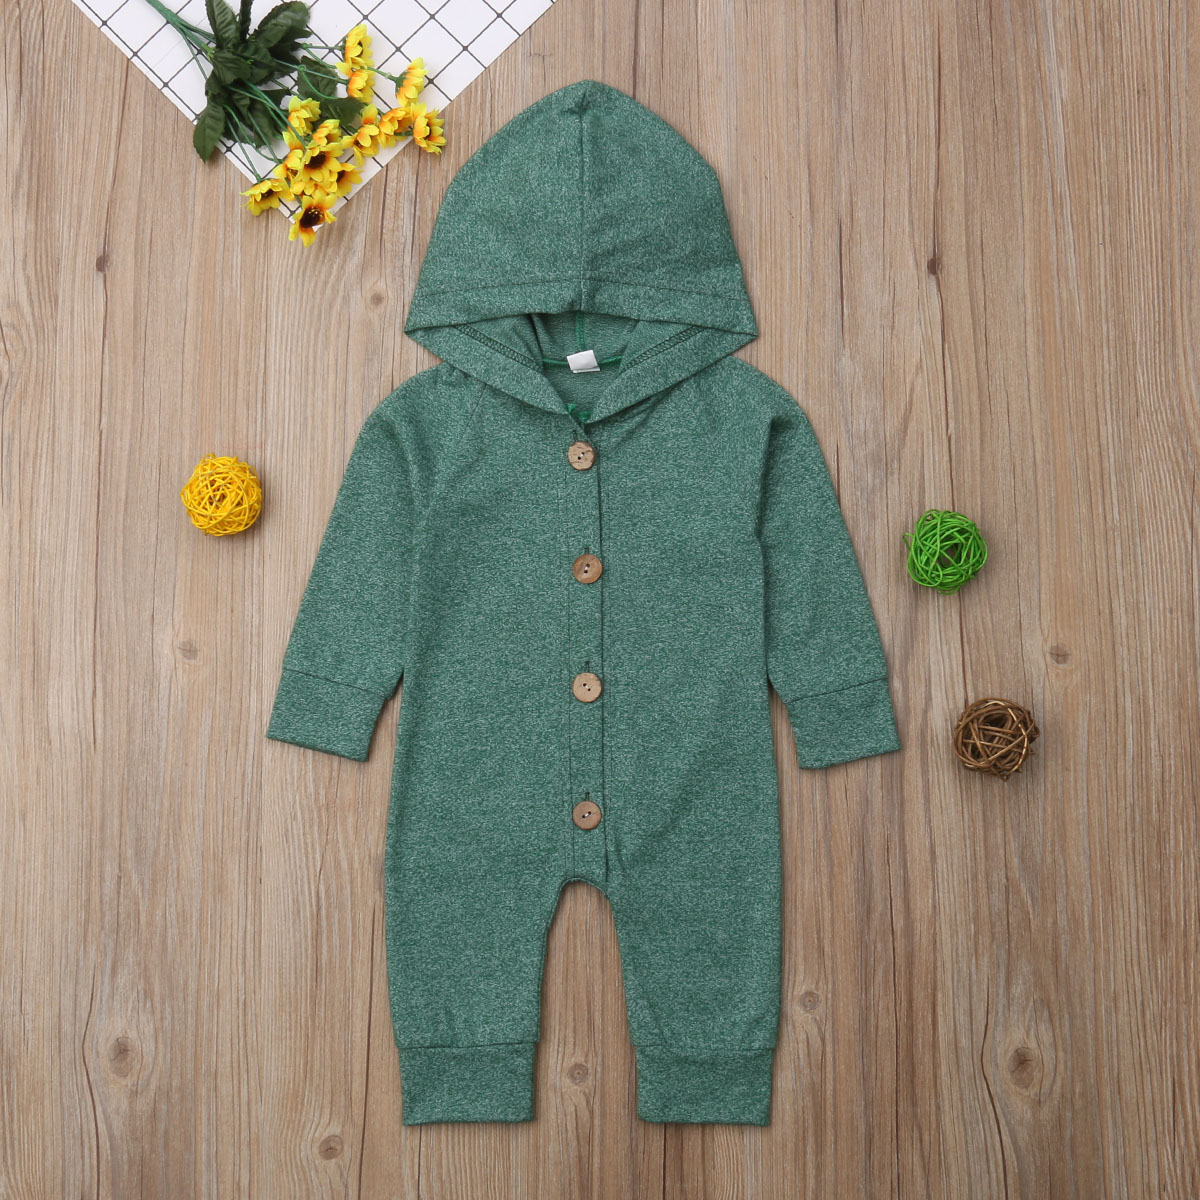 HTB1F33FMHPpK1RjSZFFq6y5PpXab 2019 Children Spring Autumn Clothing Baby Kids Boys Girls Infant Hooded Solid Romper Jumpsuit Long Sleeve Clothes Outfits 0-24M